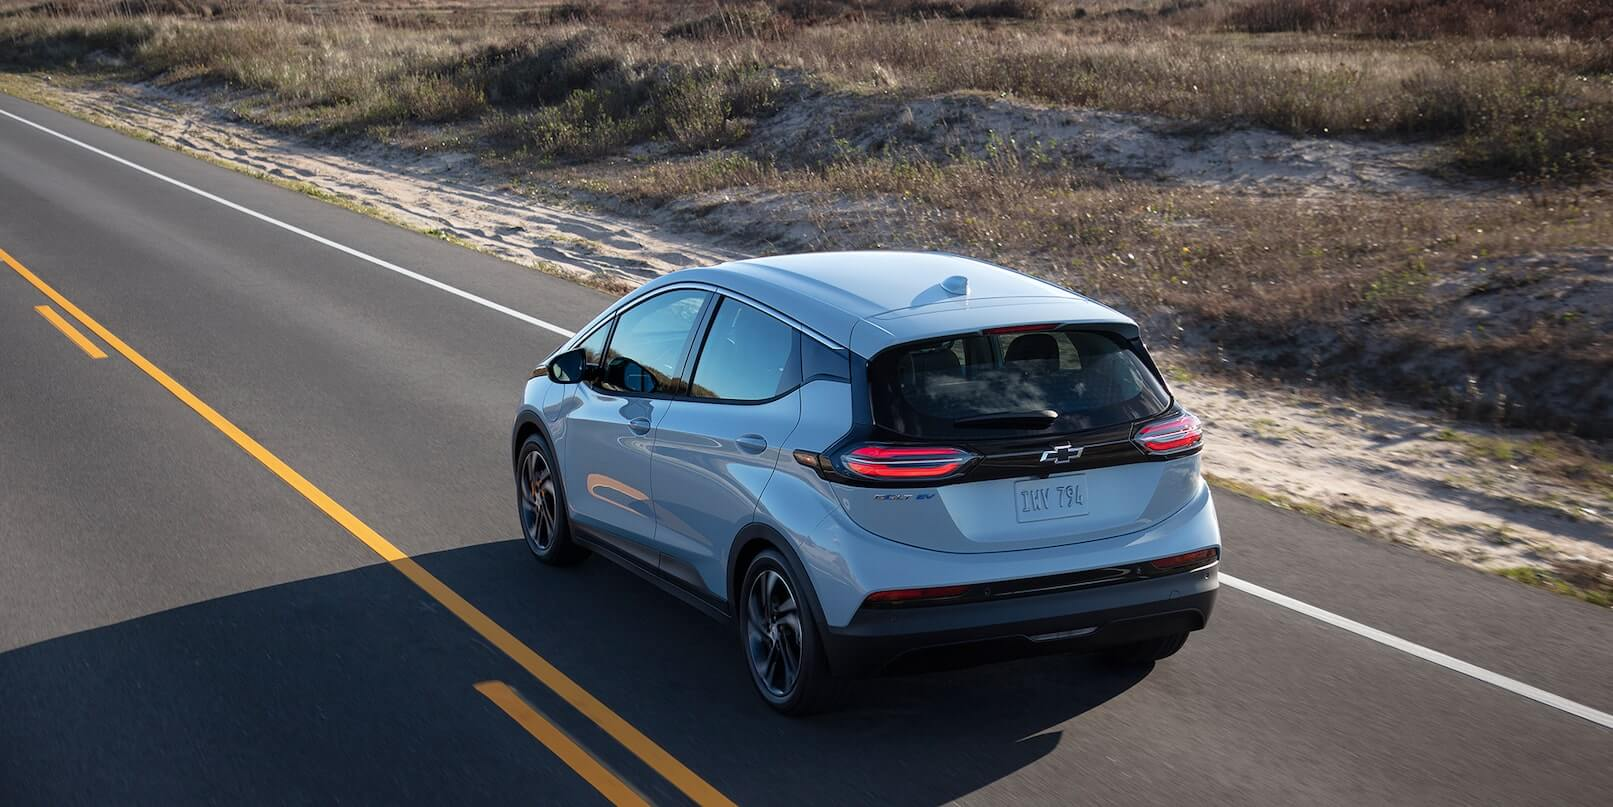 Left-rear side exterior view of the 2022 Chevrolet Bolt EV driving on the road.